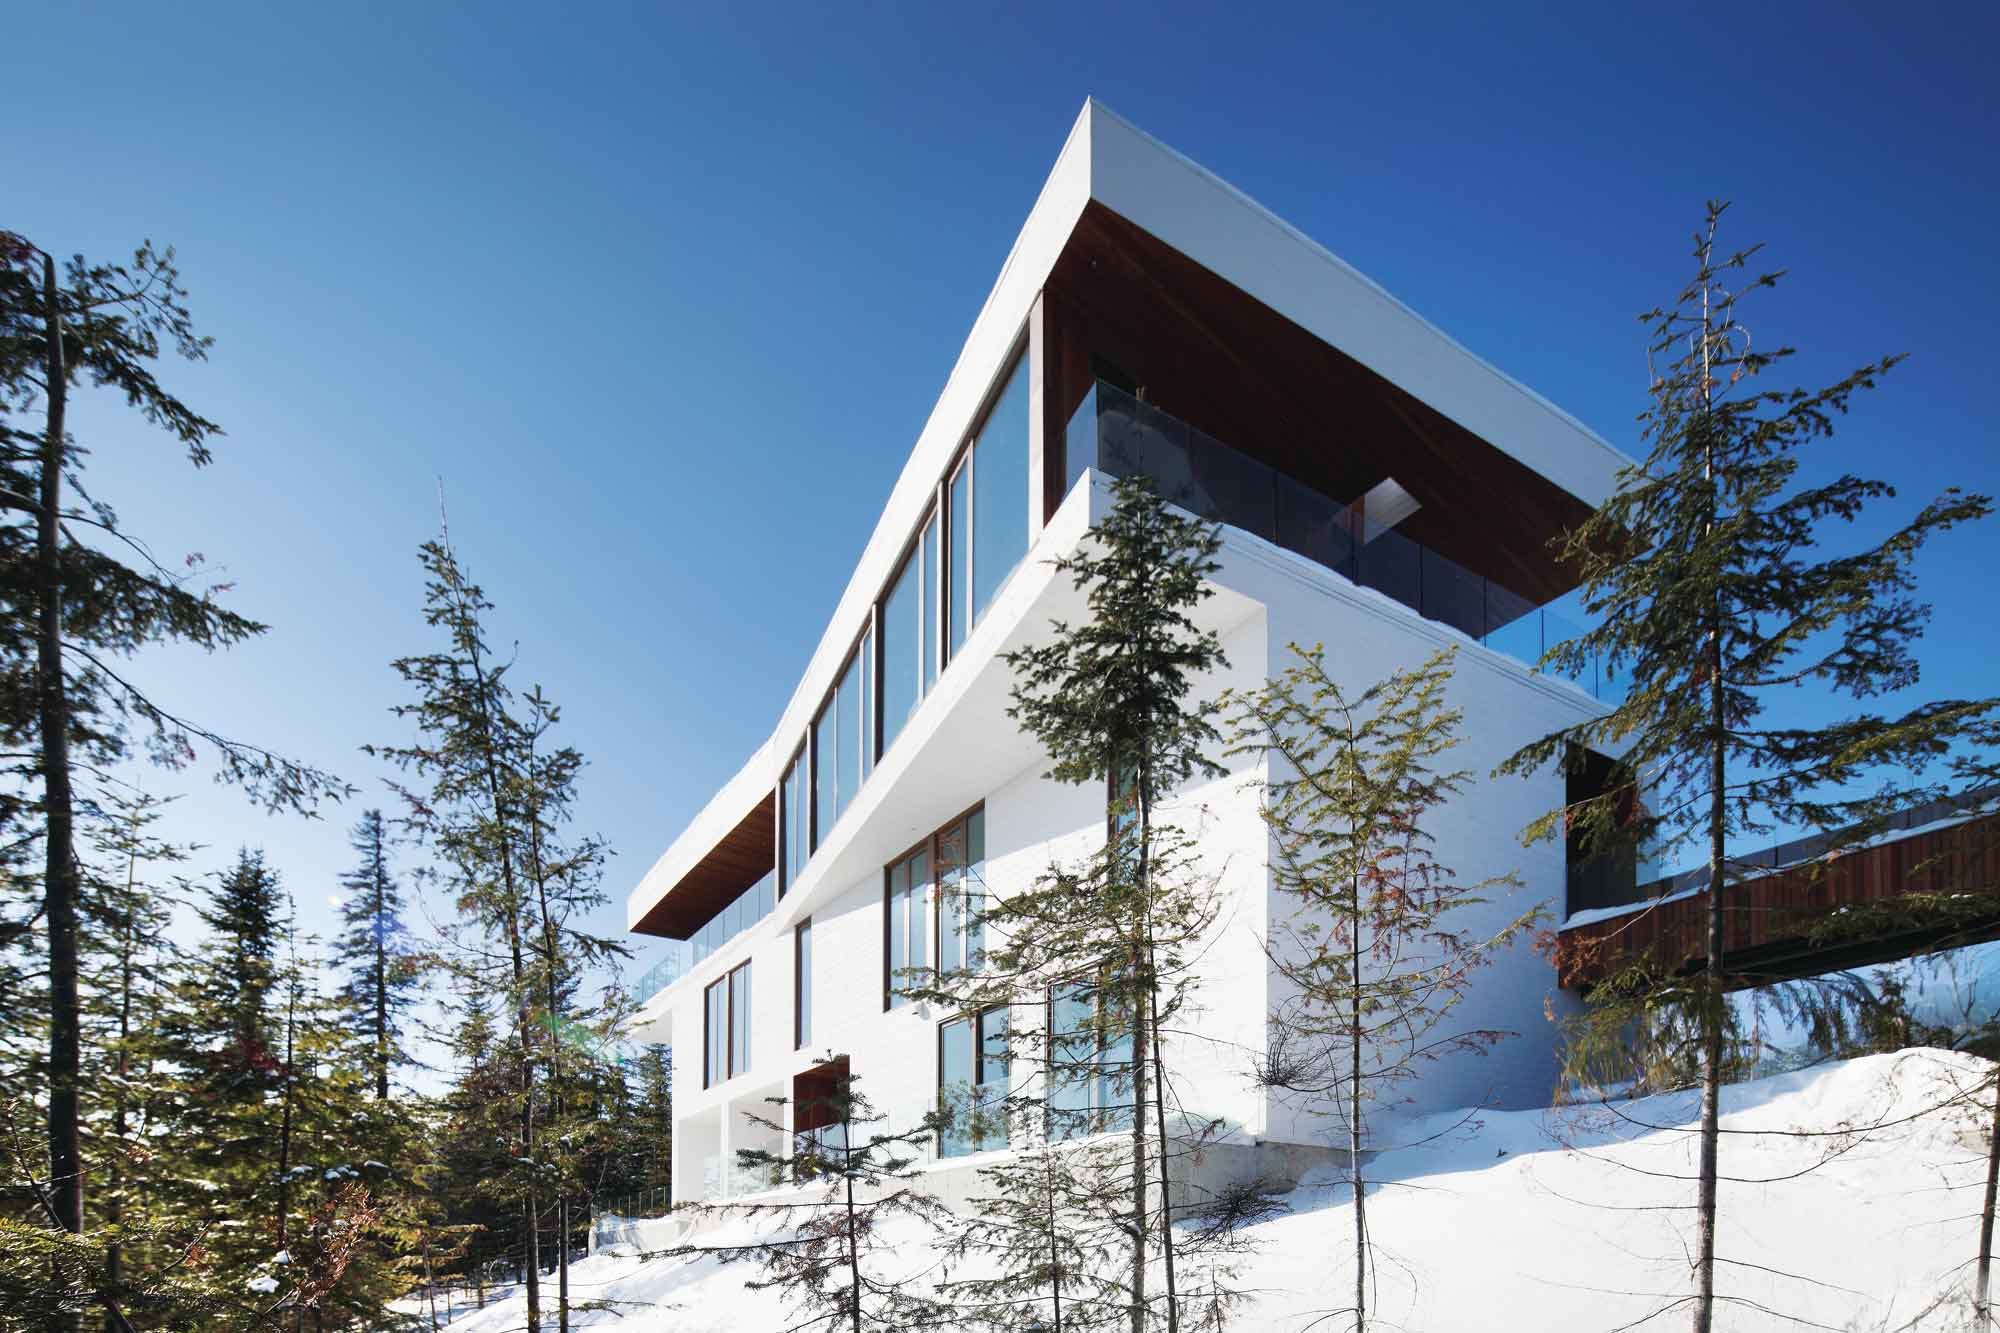 The recipient of a Nobilis prize for architecture, the St. Lawrence Estate, a contemporary ski retreat in Quebec's Massif valley, was designed by Bourgeois/Lechasseur architects in 2014.